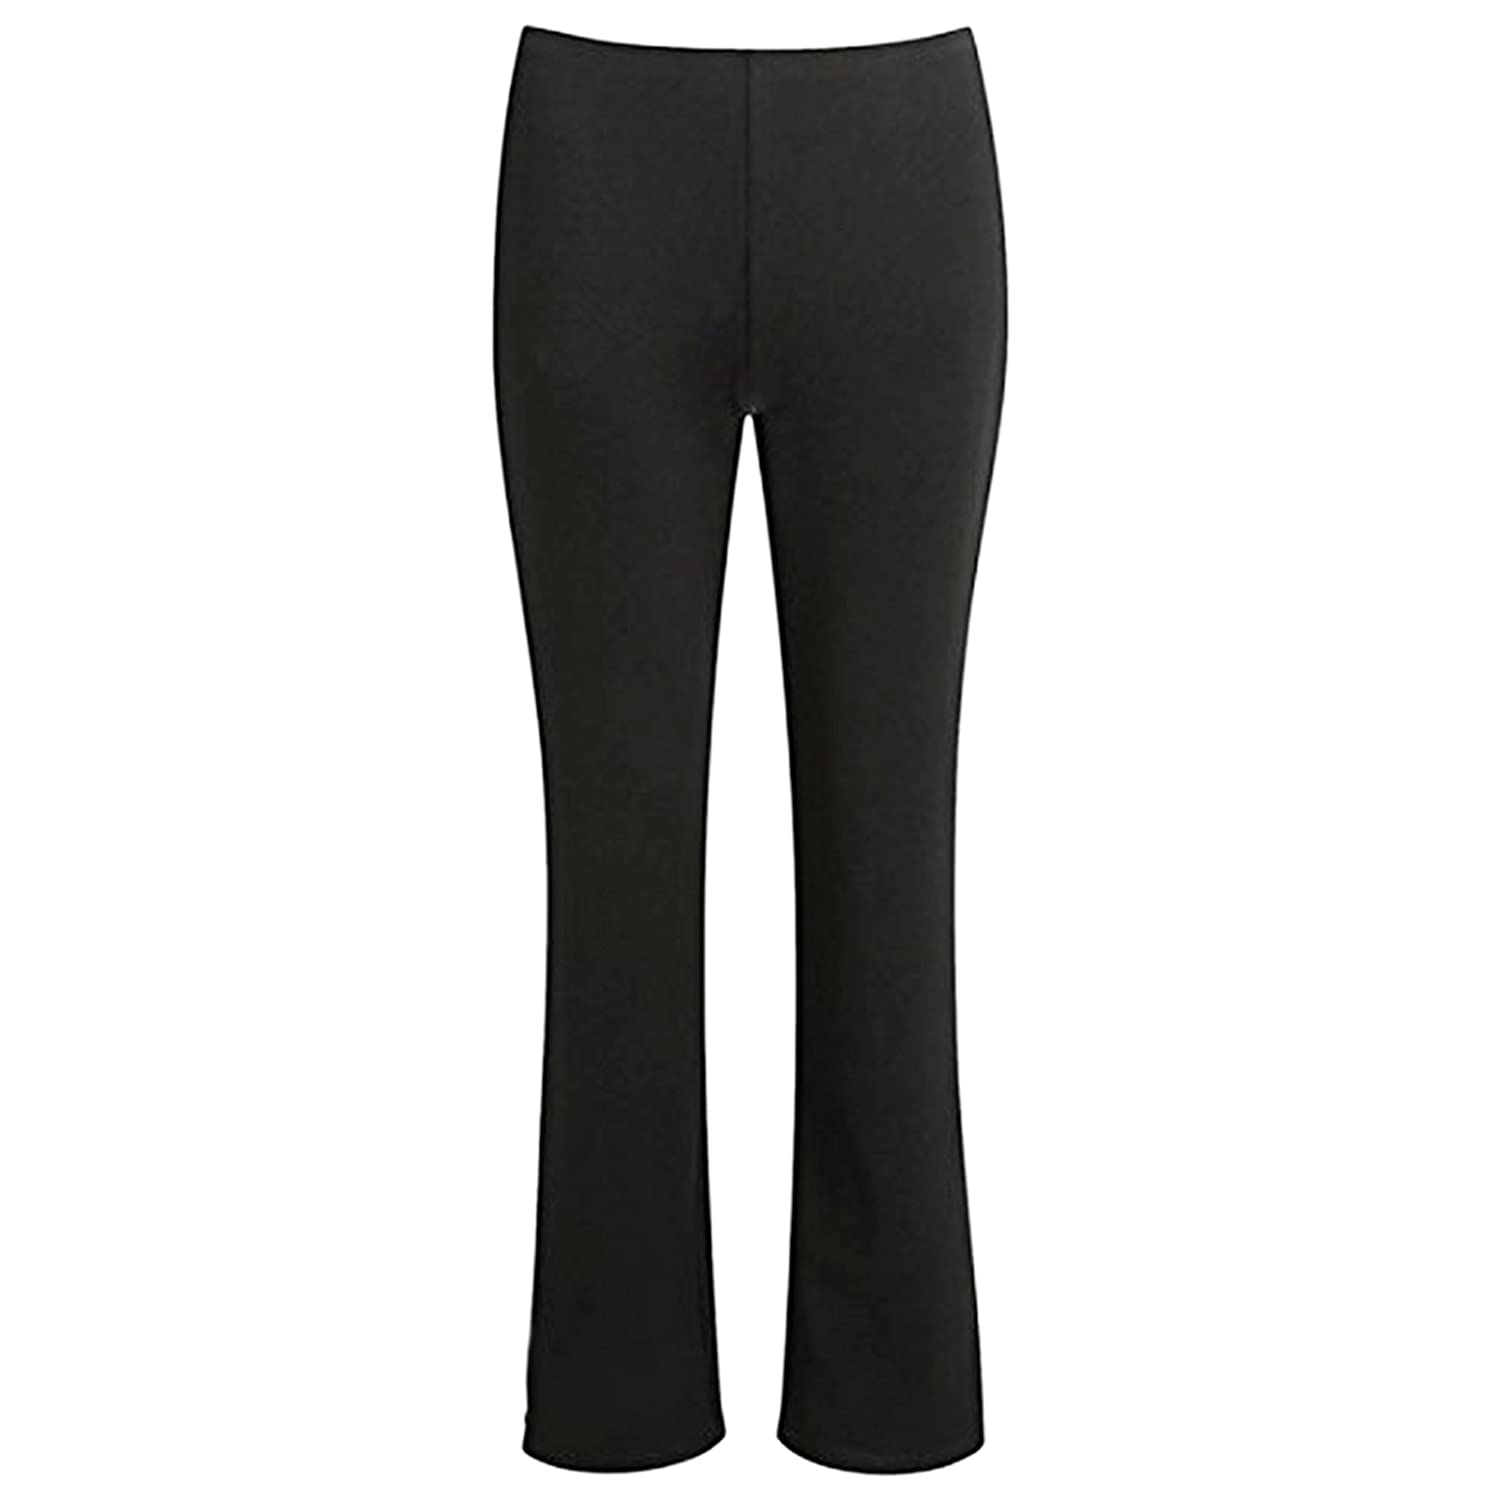 4cf5eafa0f8 MyShoeStore (Pack of 2 Ladies Bootleg Trousers Women Boot Cut High Rise  Stretch Soft Finely